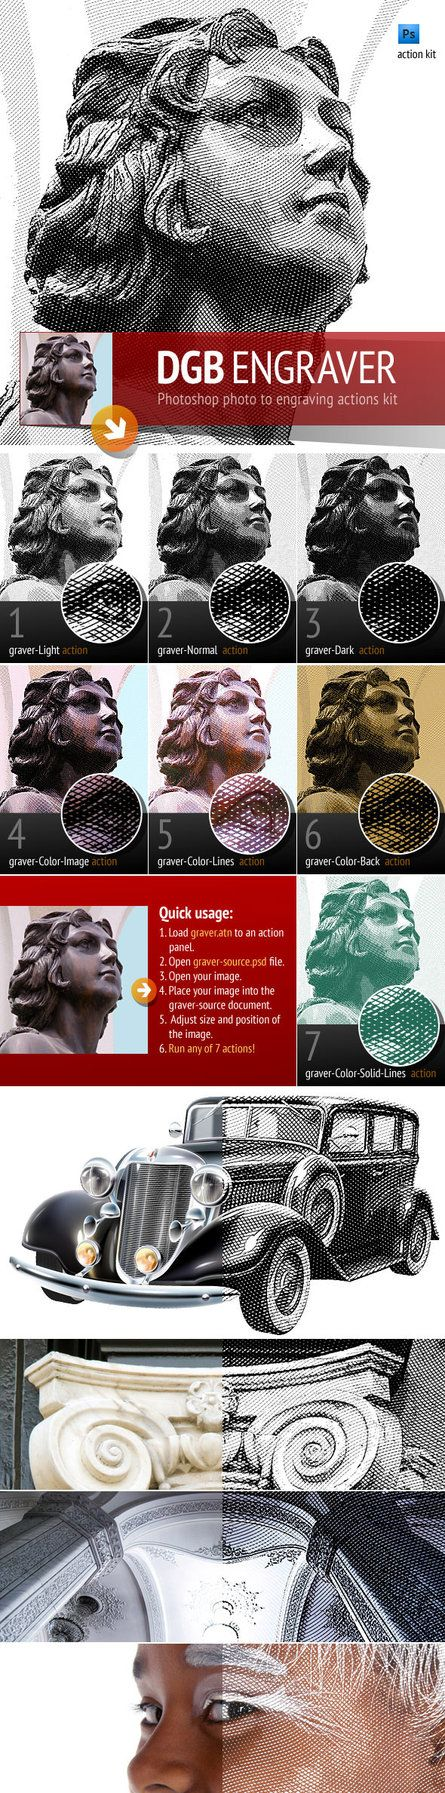 DOWNLOAD: goo.gl/YbeYjuDGB Engrave action kit – That's a tool to easily turn a photo into stylized engraving. Although this process is very simple, please read the manual to...